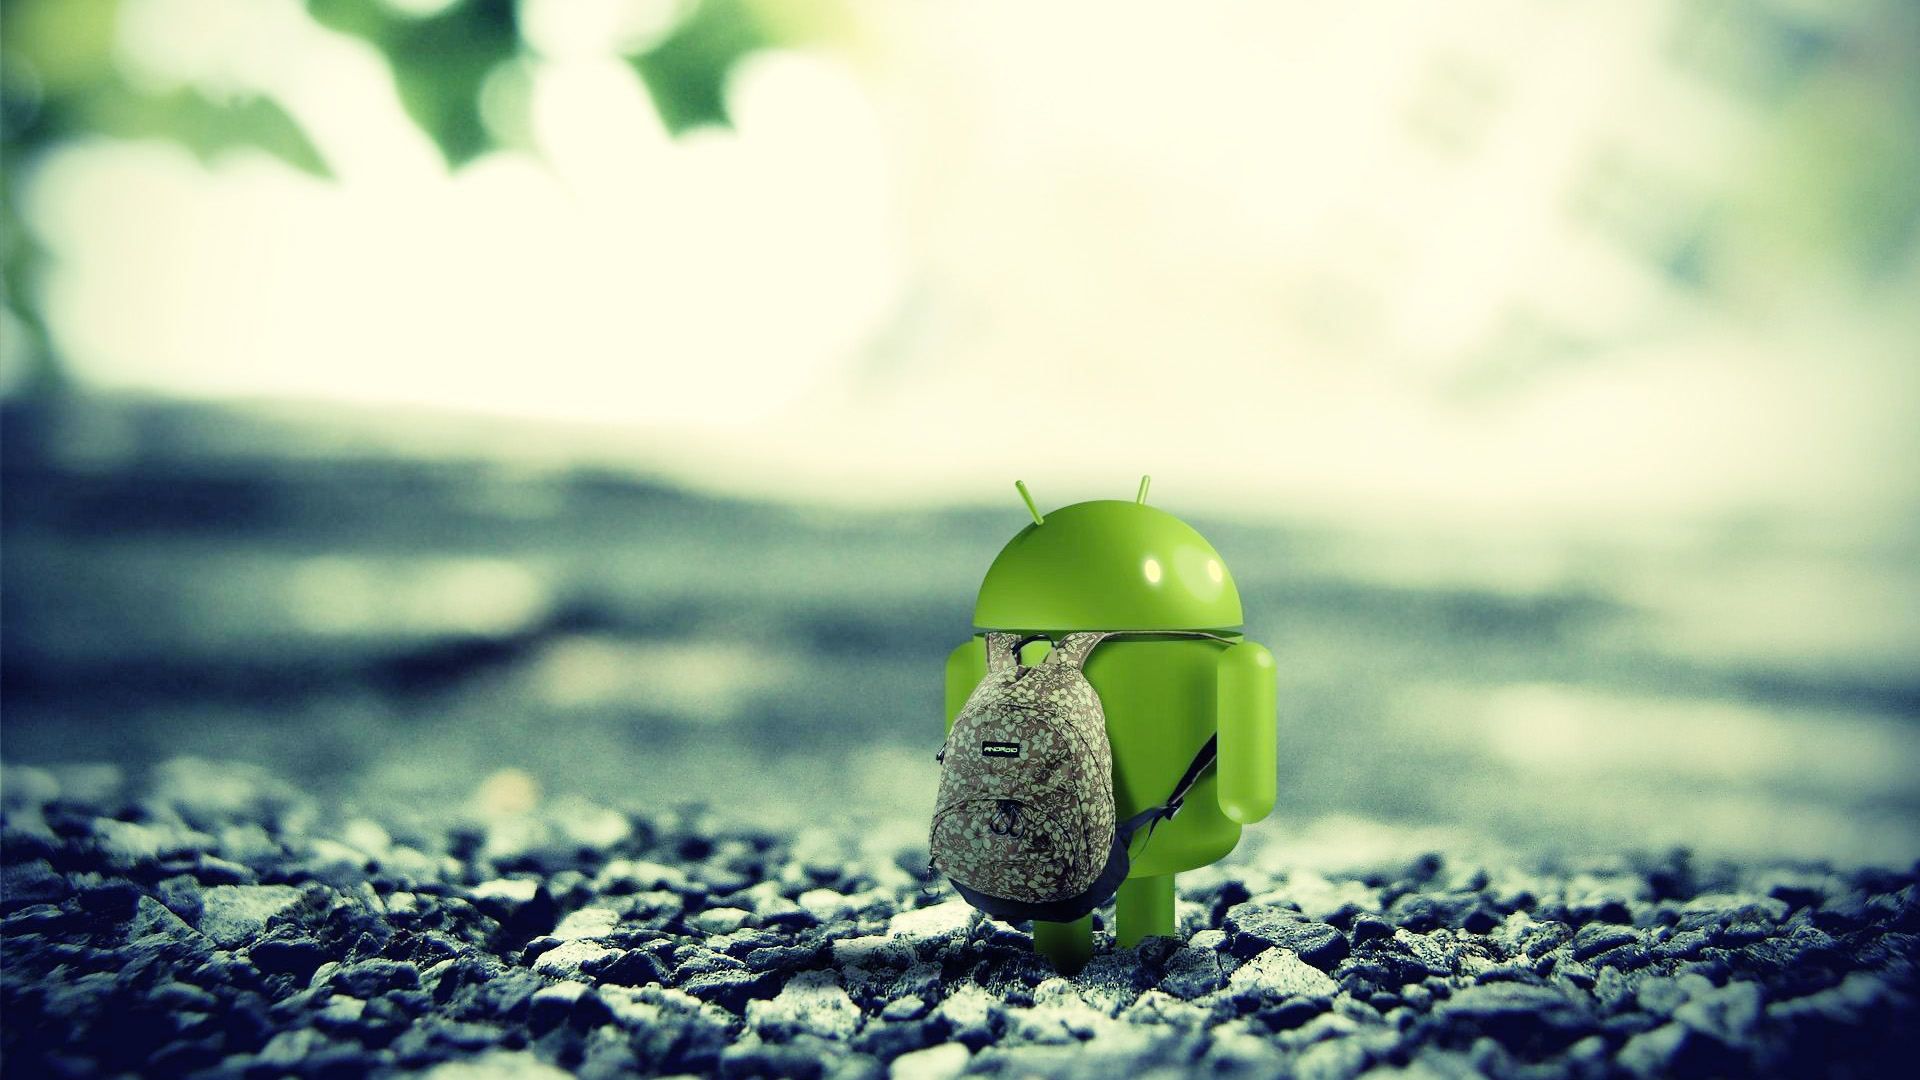 Adorable Android Backgrounds